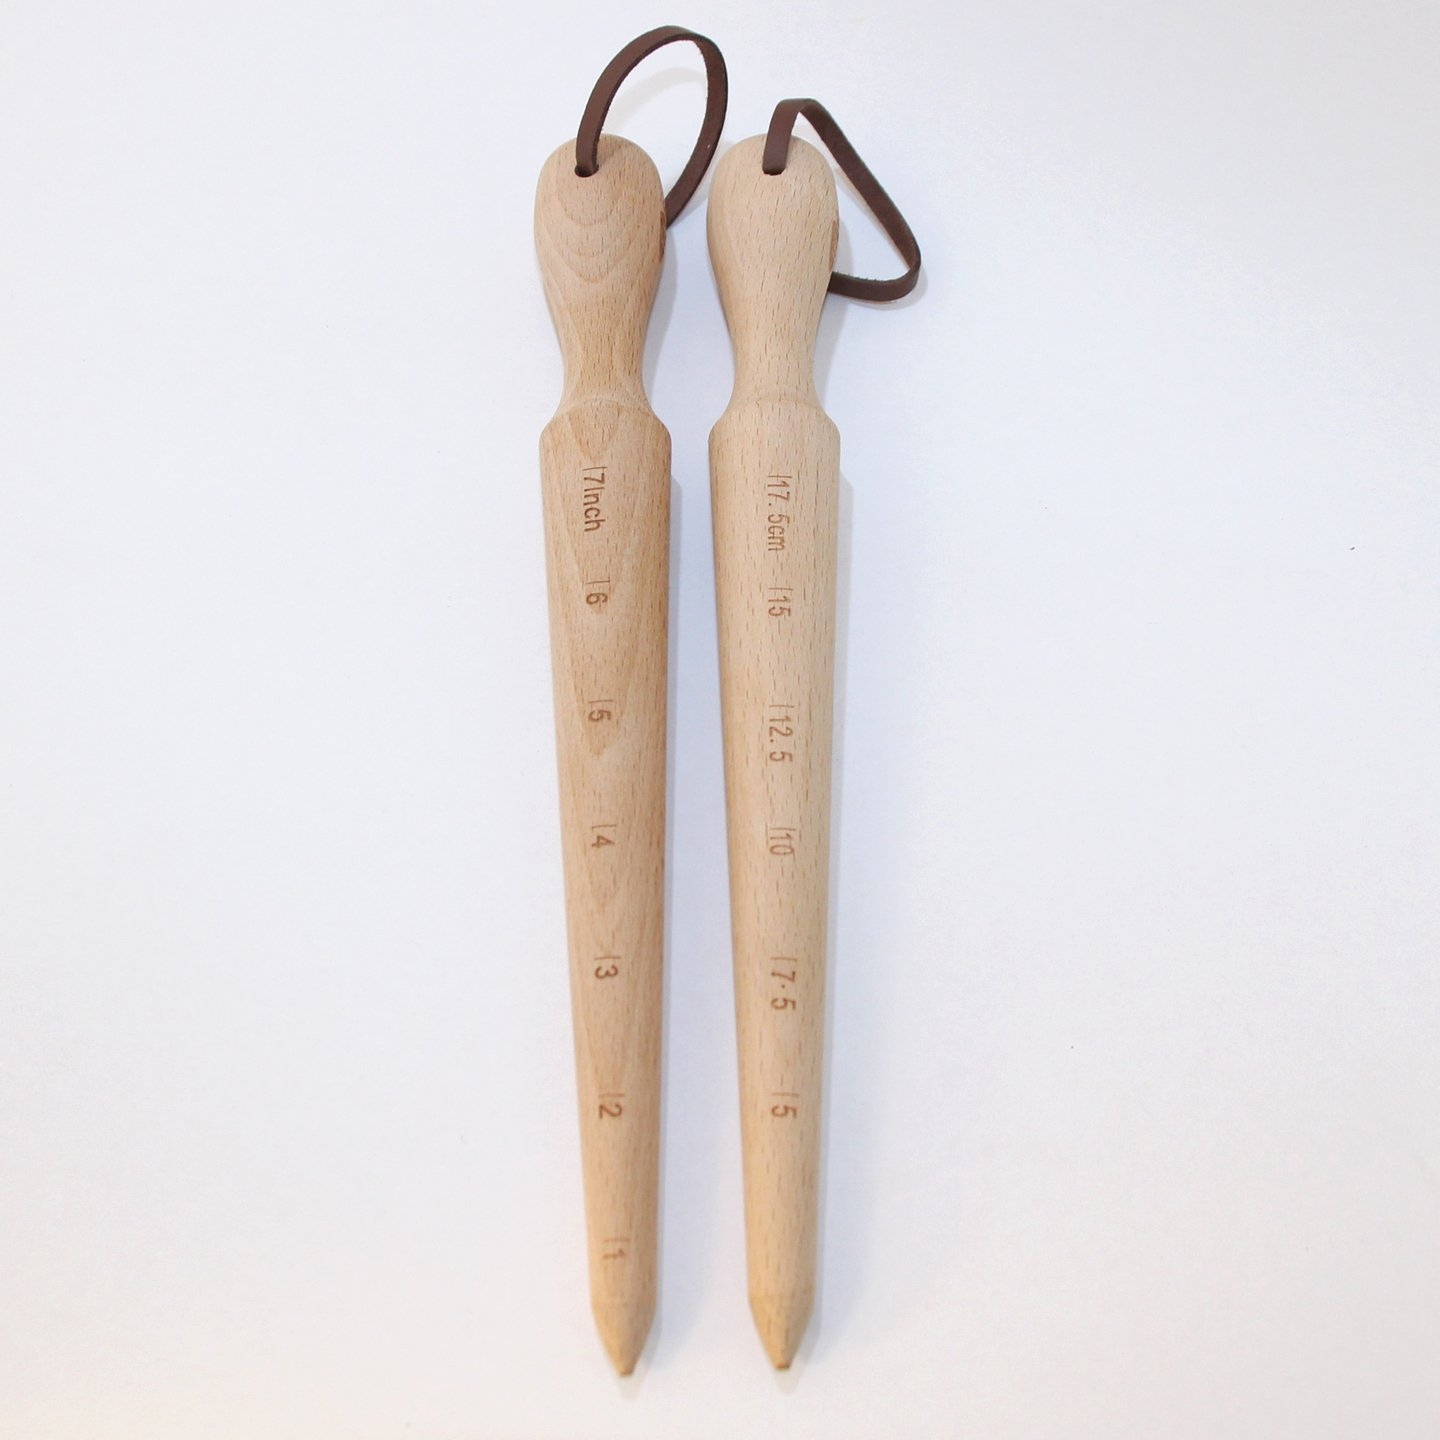 Carrot Design Solid Wood Seed Dibber Tool for Planting Seeds Bulbs and Plants by Carrot Design (Image #8)